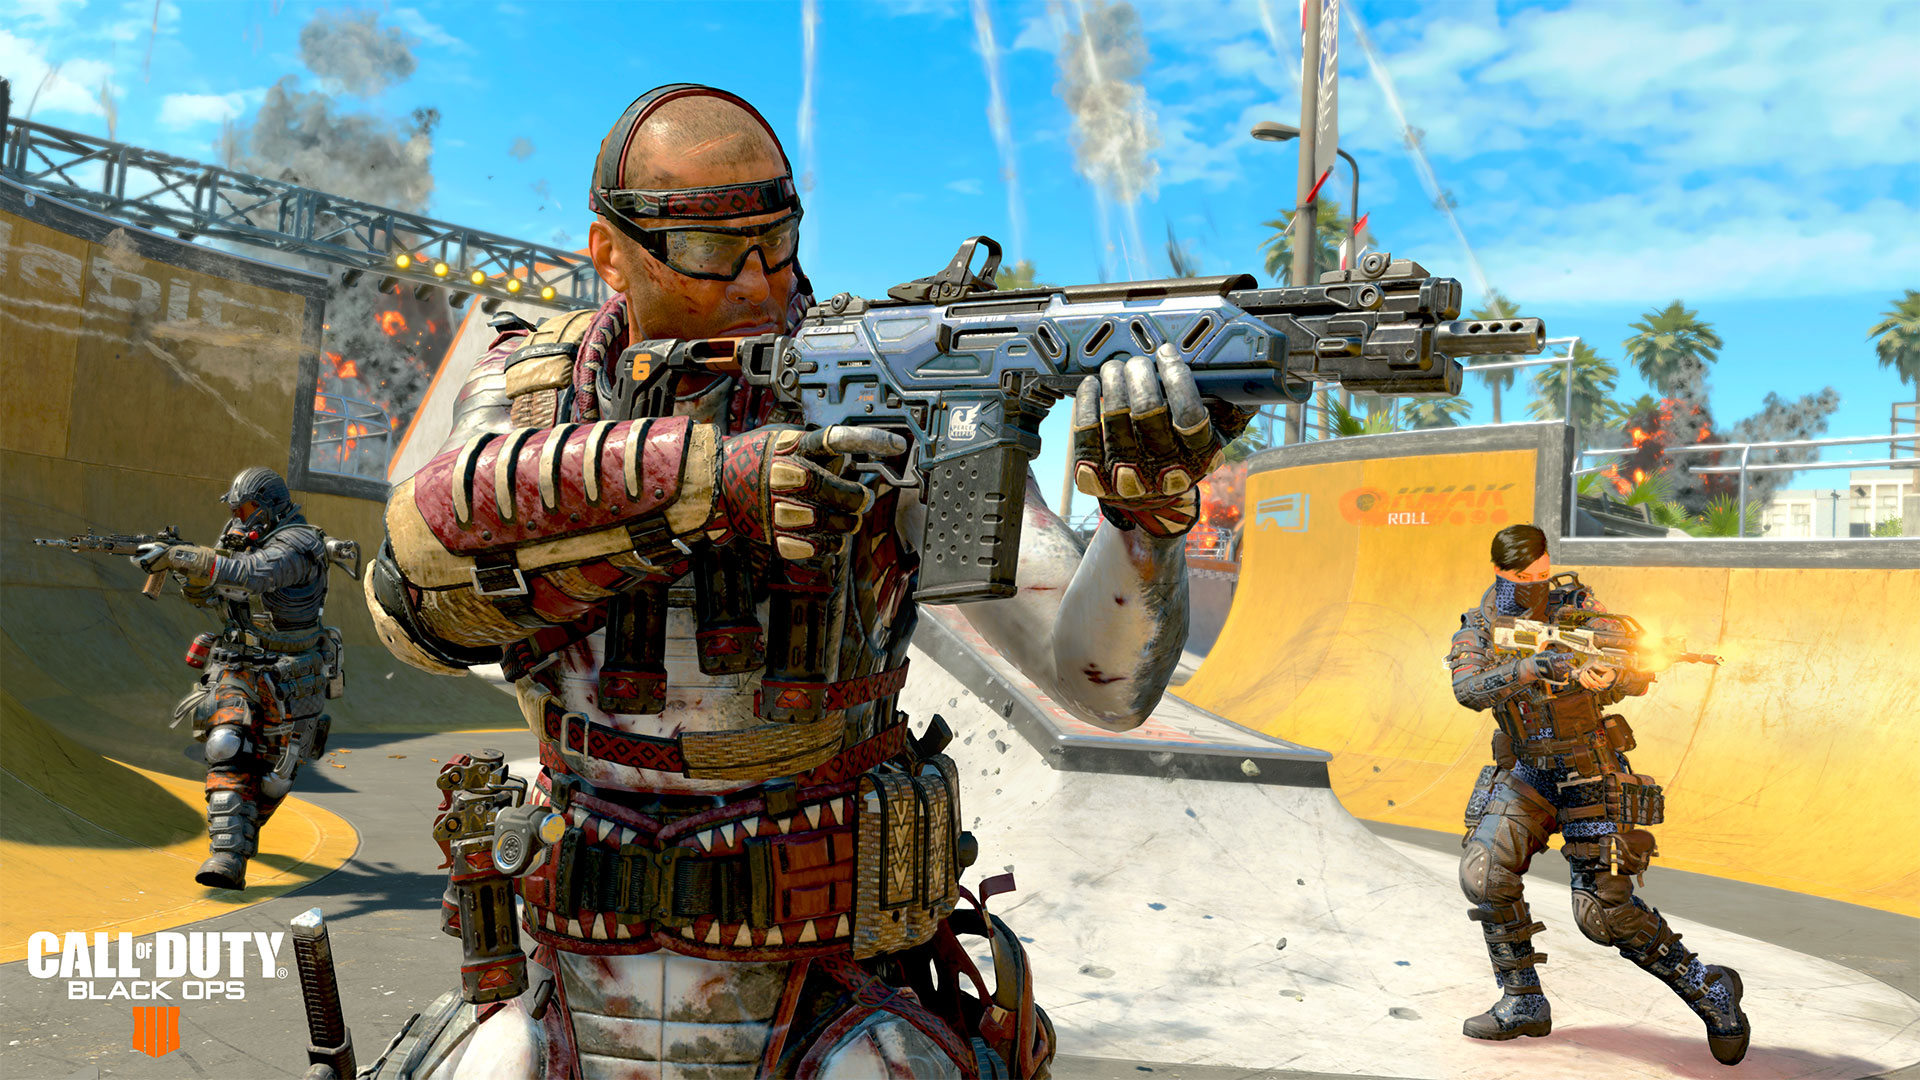 Ride the waves and jump into Call of Duty®: Black Ops 4 Days